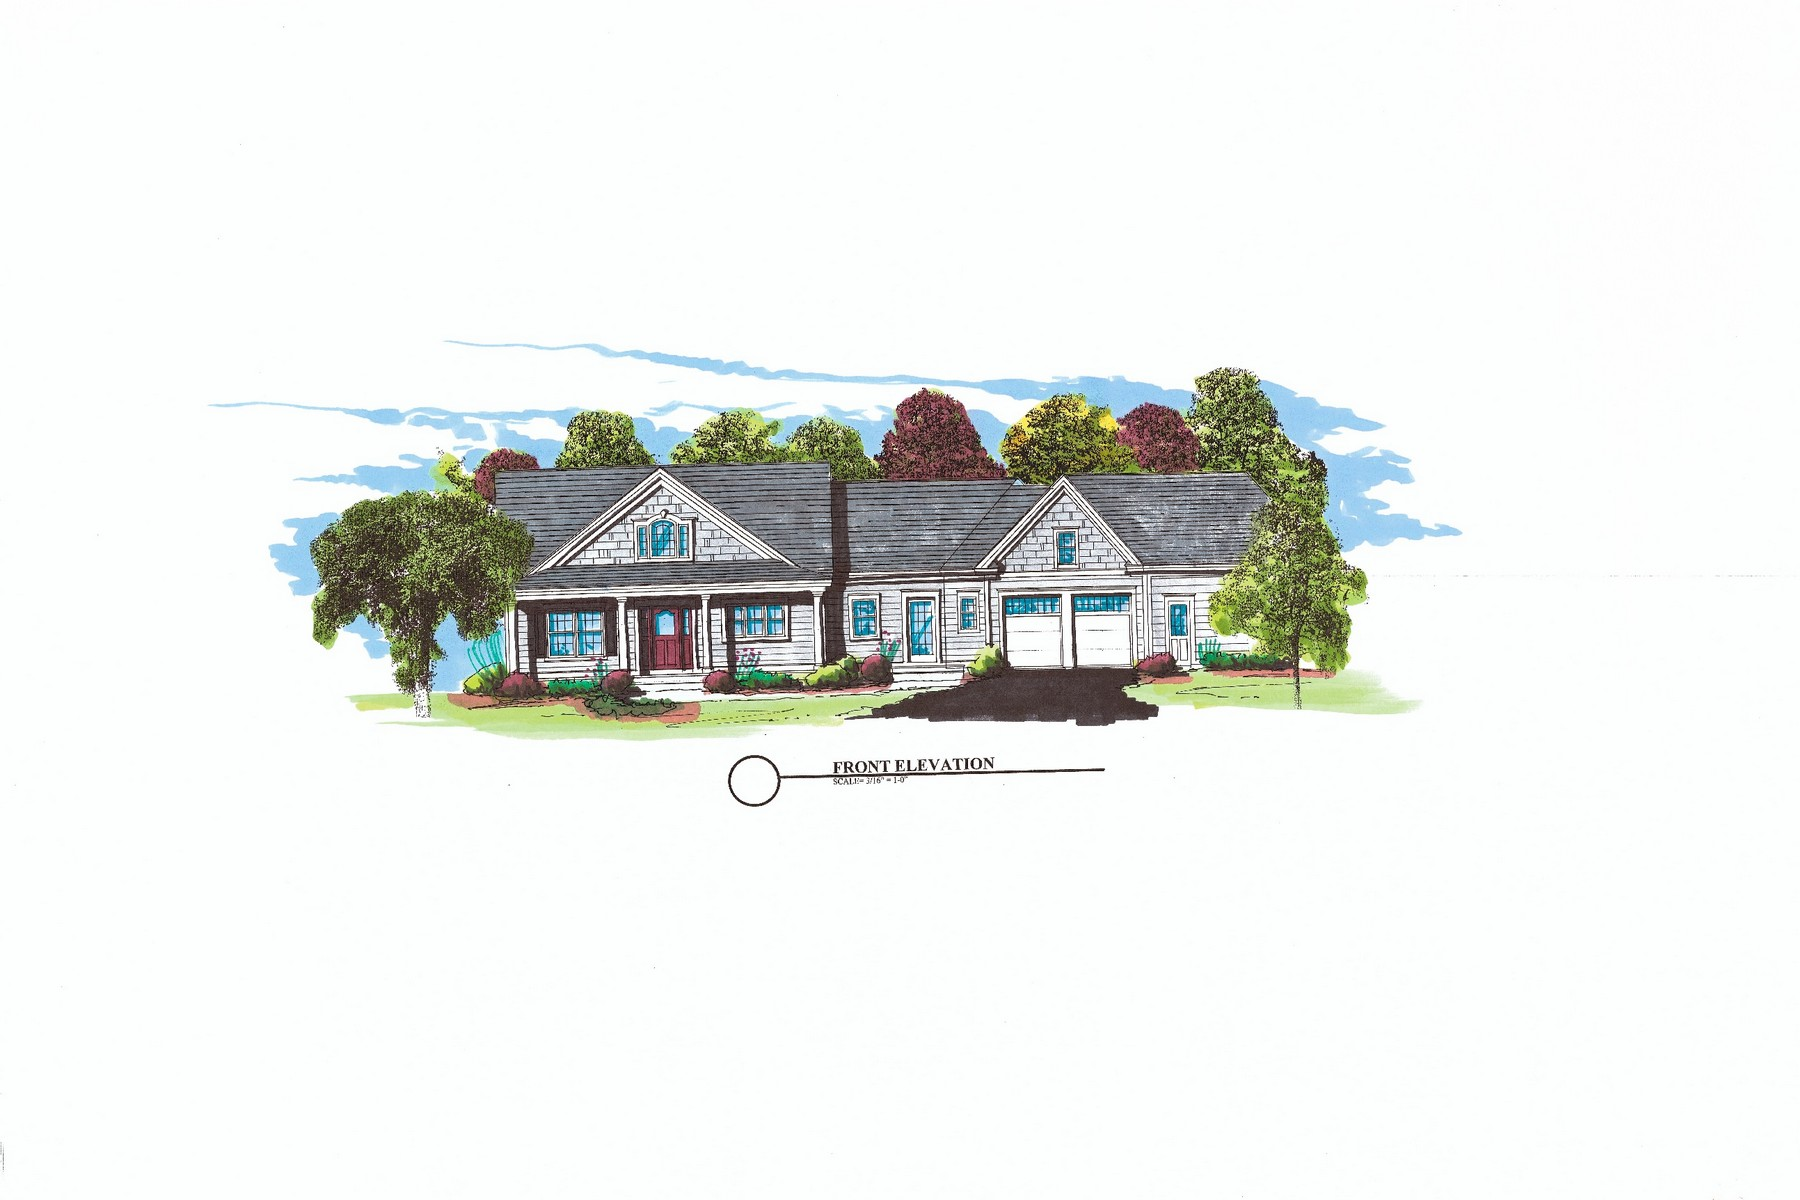 Maison unifamiliale pour l Vente à Ranch Style Home To Be Built on 2.13 Acres 16 Hill Road Old Saybrook, Connecticut, 06475 États-Unis